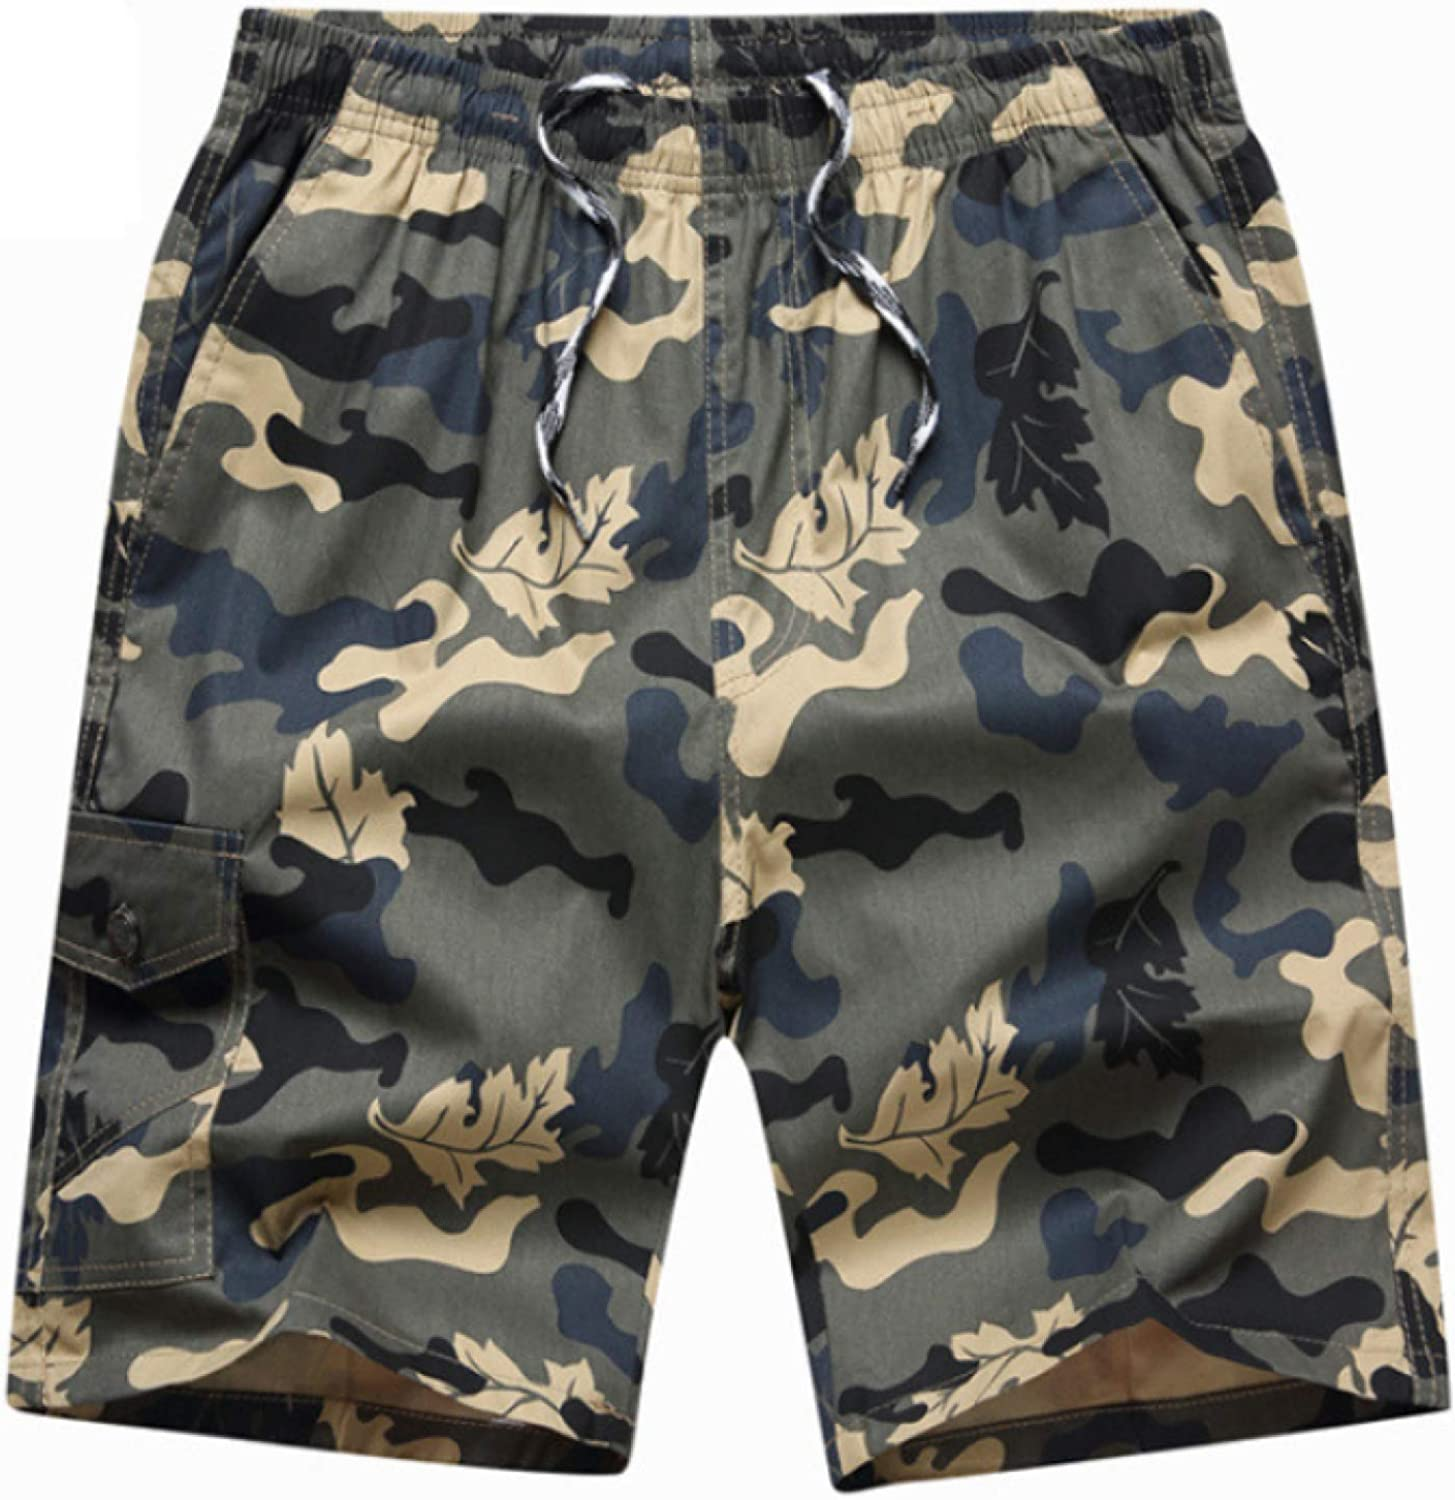 Wantess Men's Camouflage Print Shorts Loose Large Size Comfortable Breathable Casual